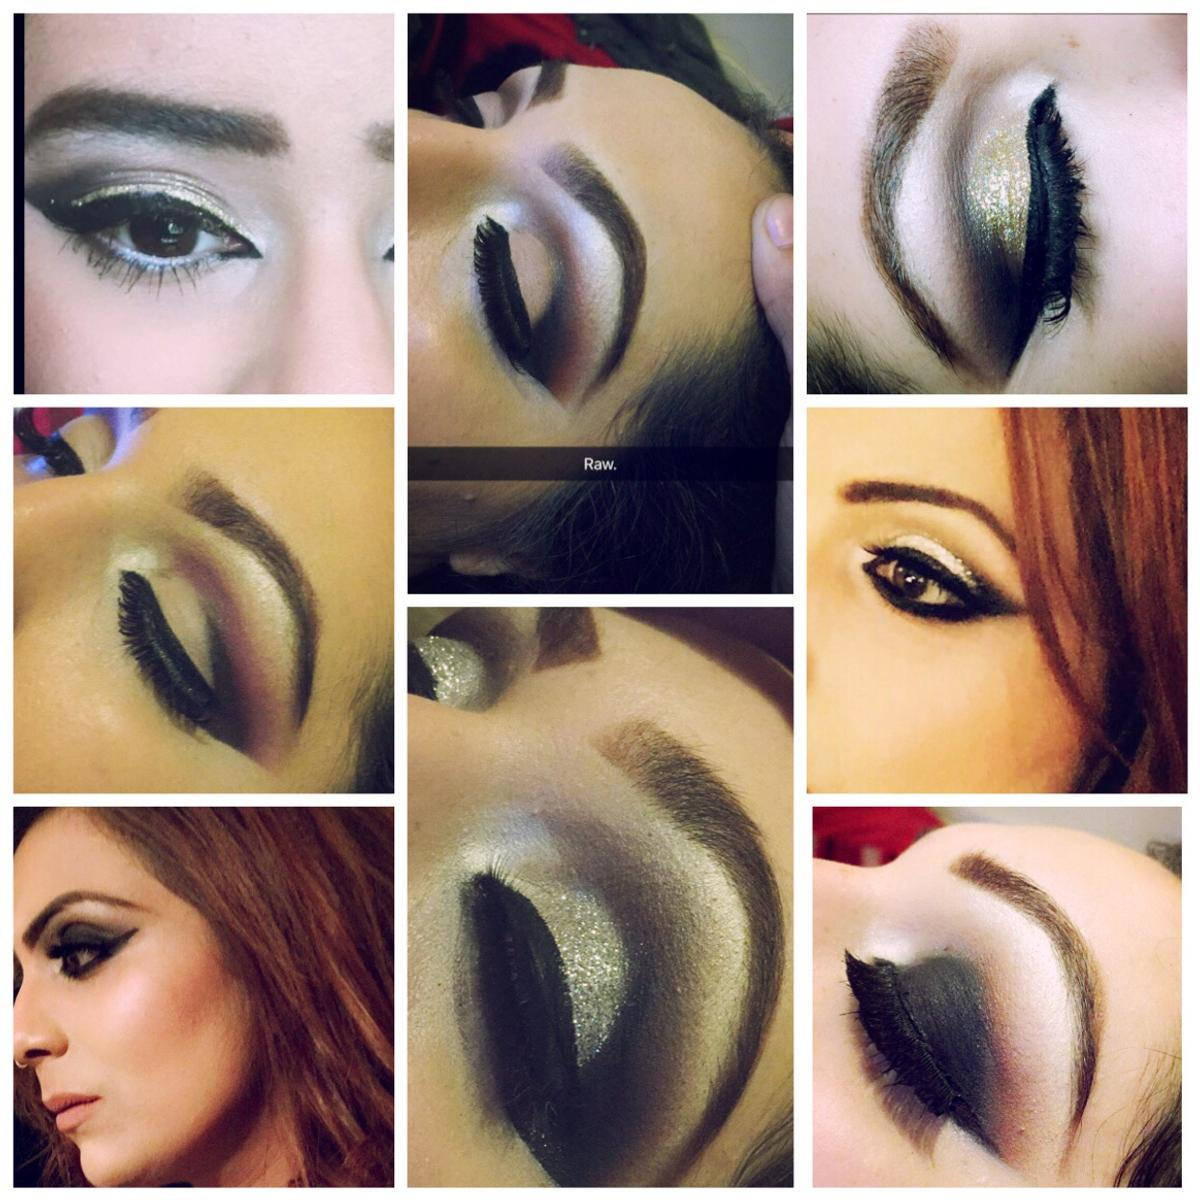 Mobile Hair And Makeup Artist in WS3 Walsall for £60 00 for